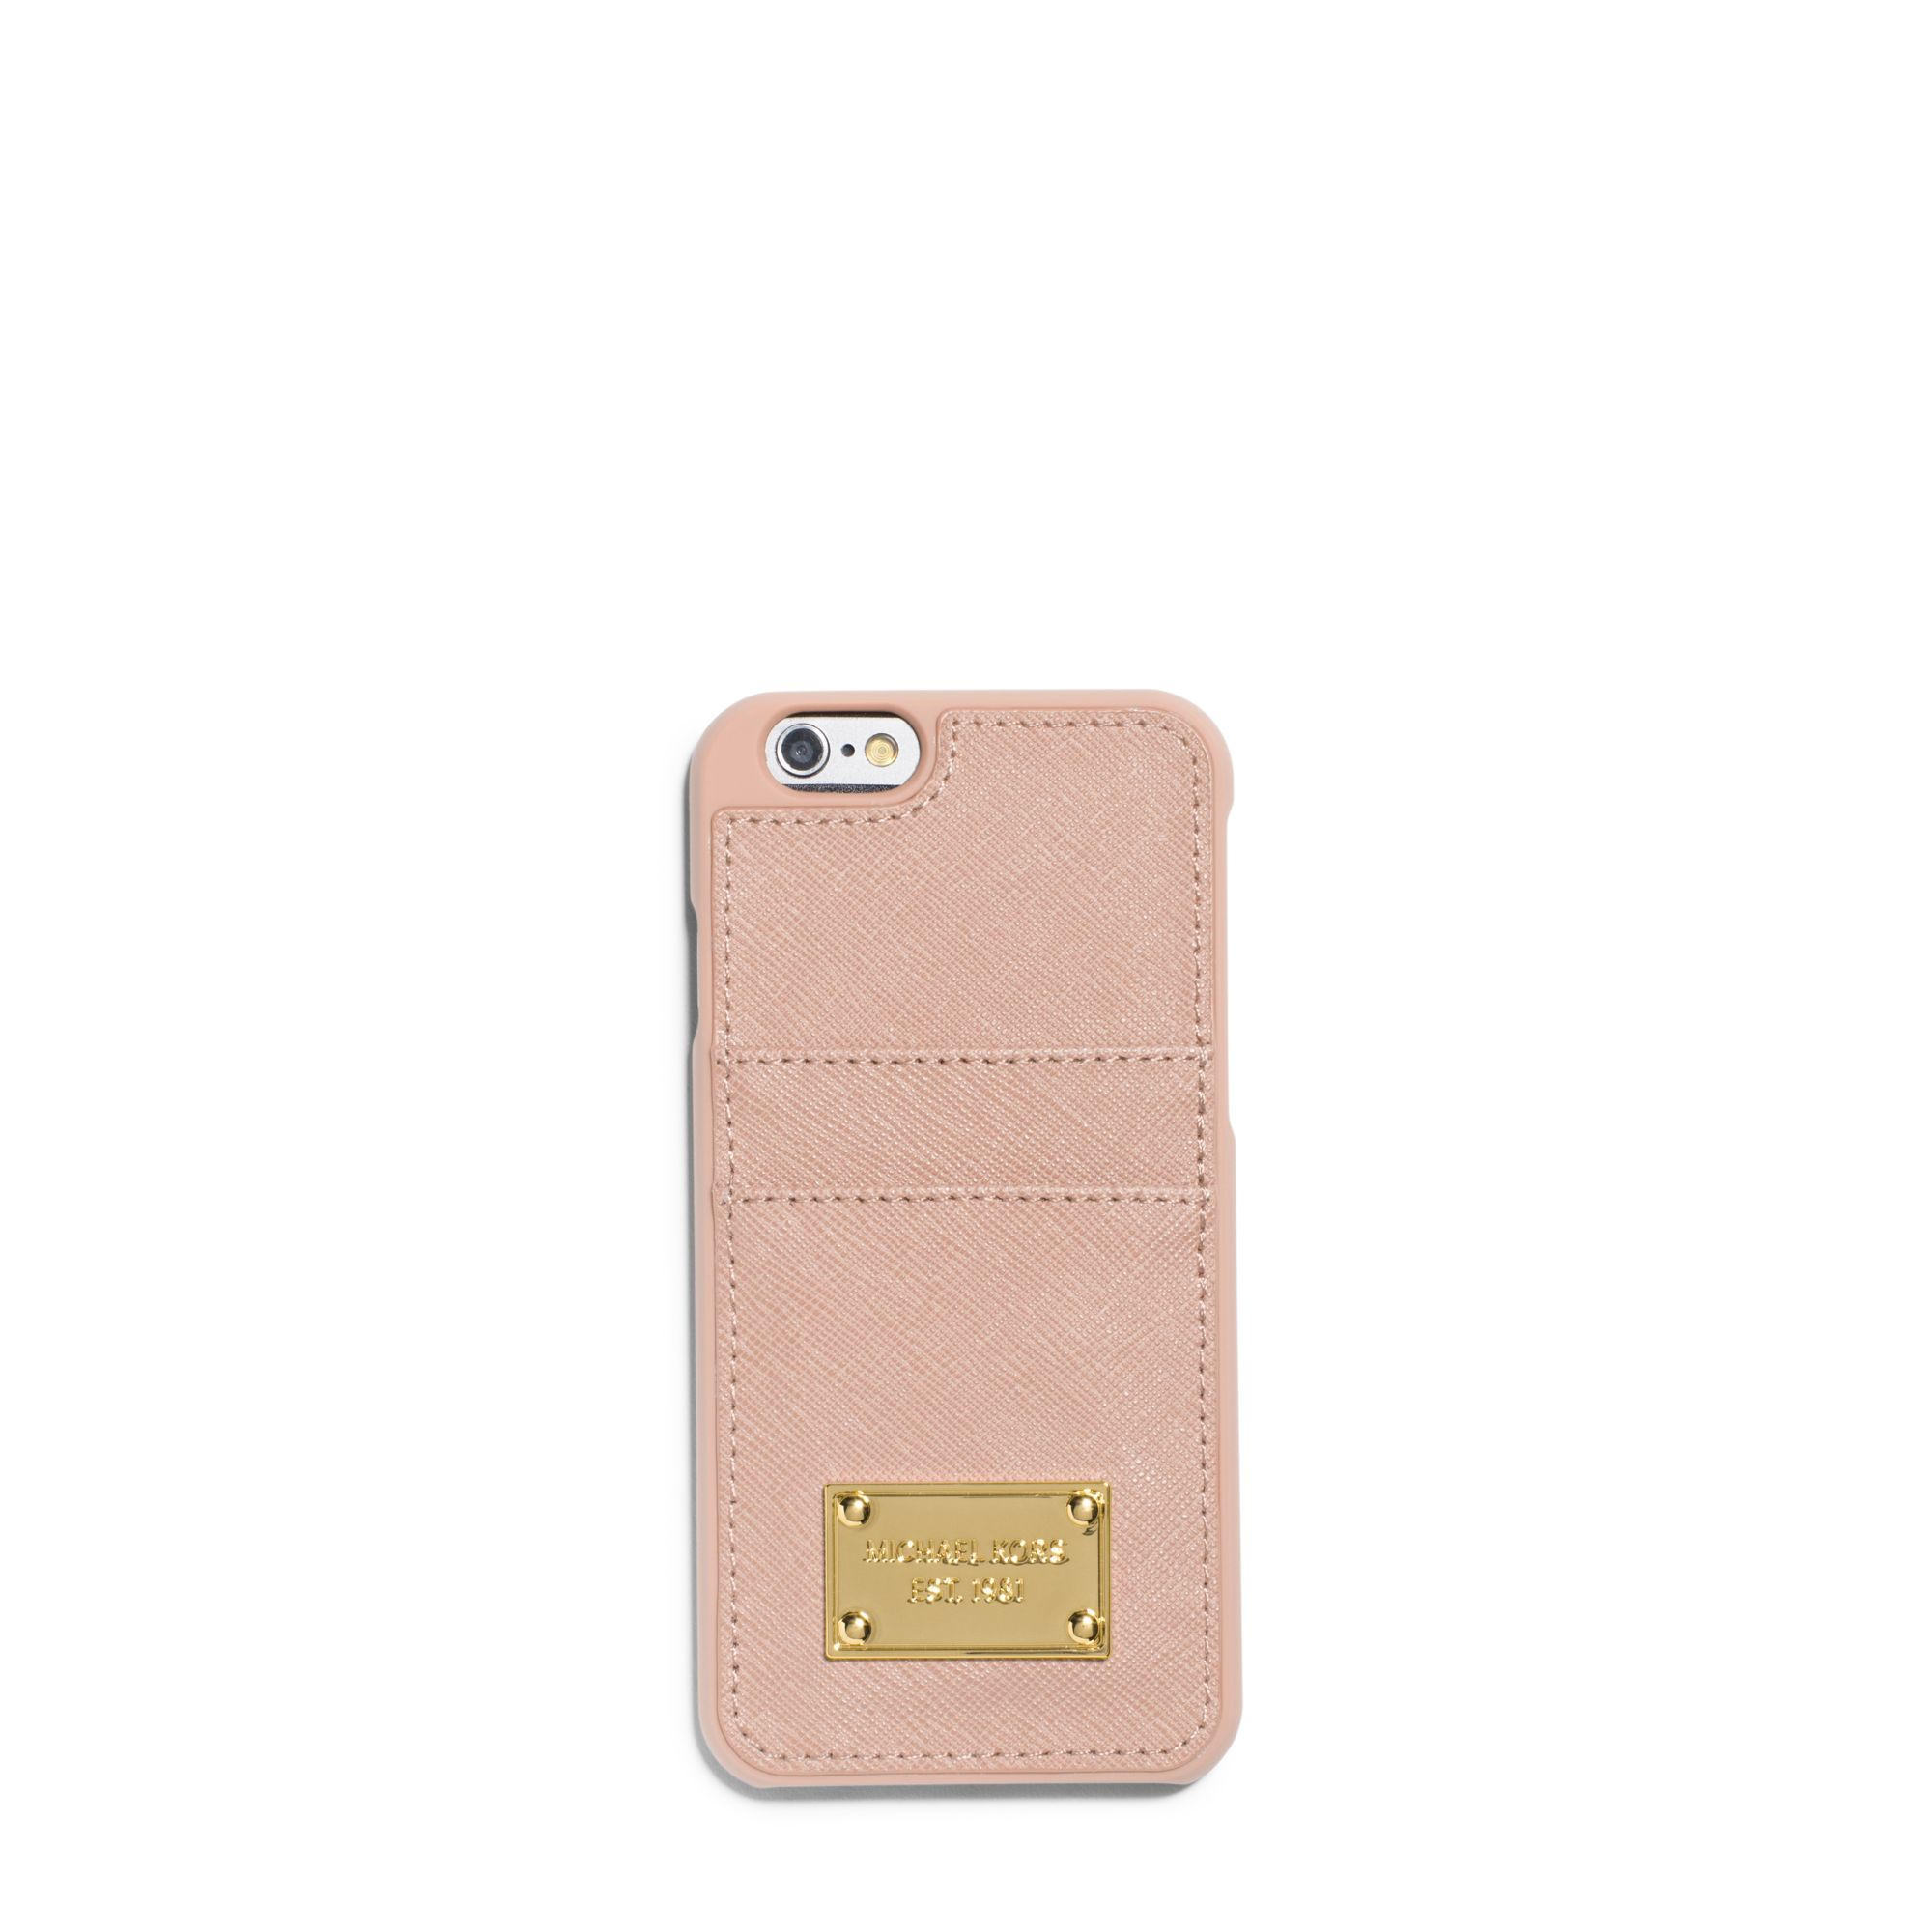 Michael Kors Saffiano Leather Pocket Smartphone Case in